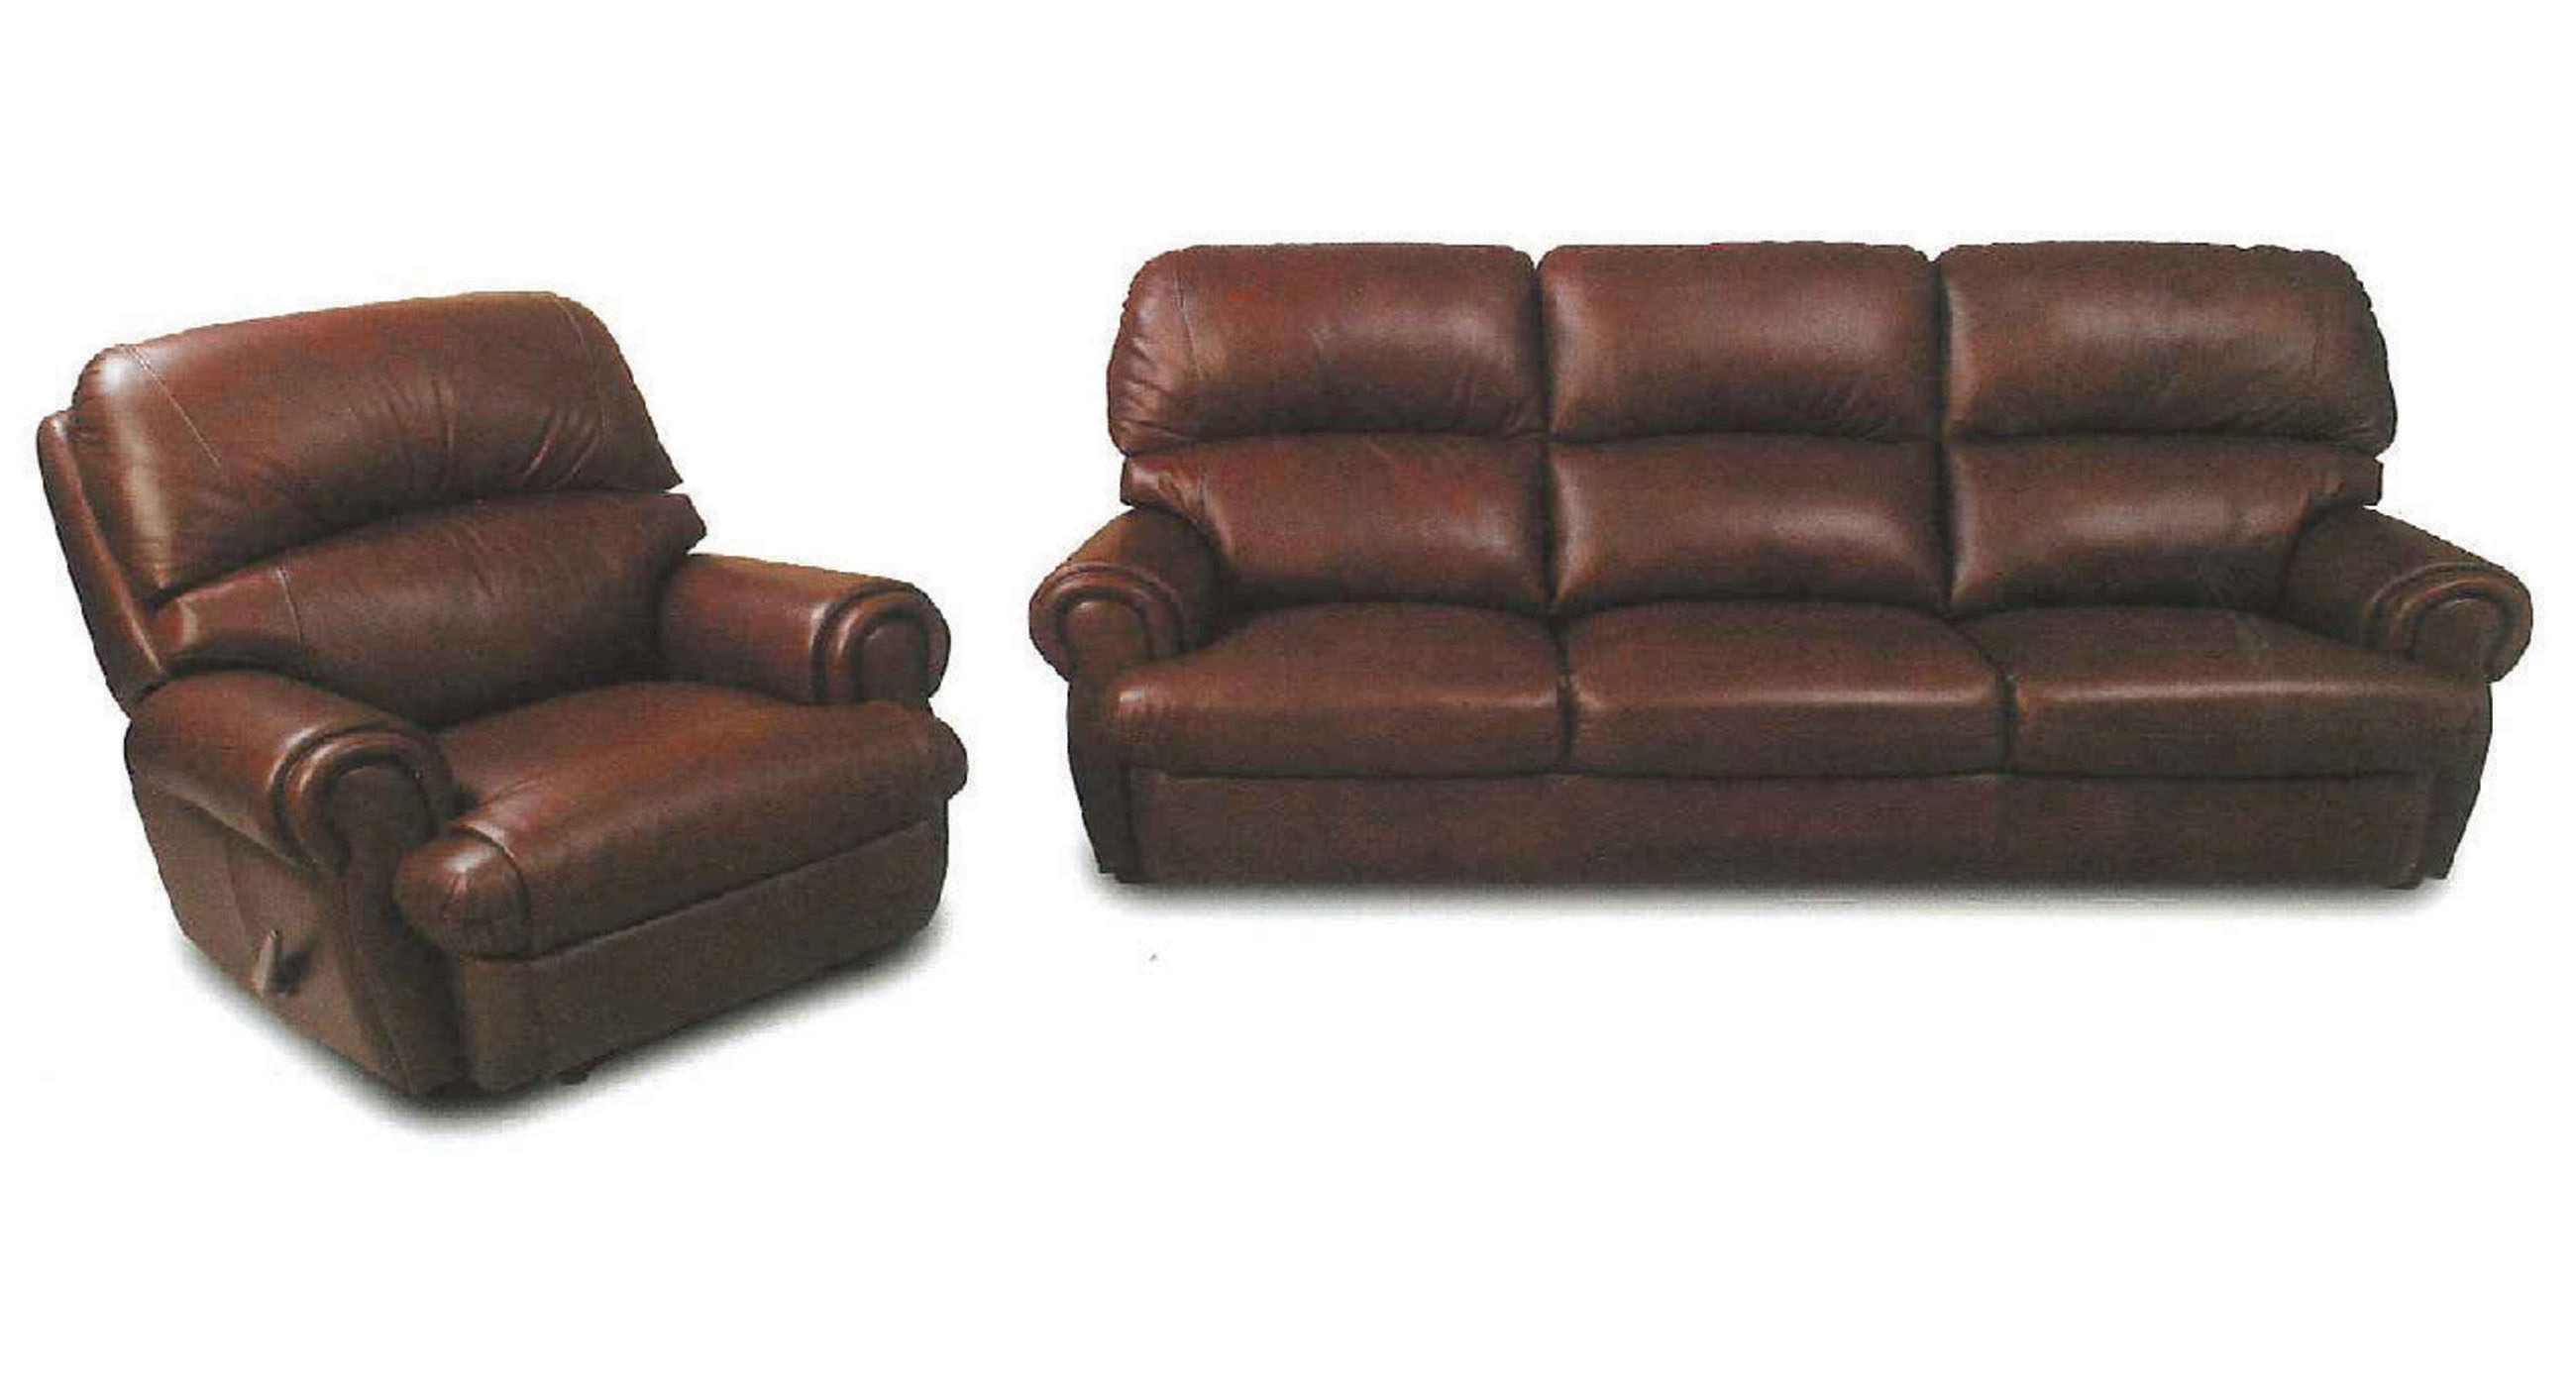 Alto Reclining Sofa and Chairs